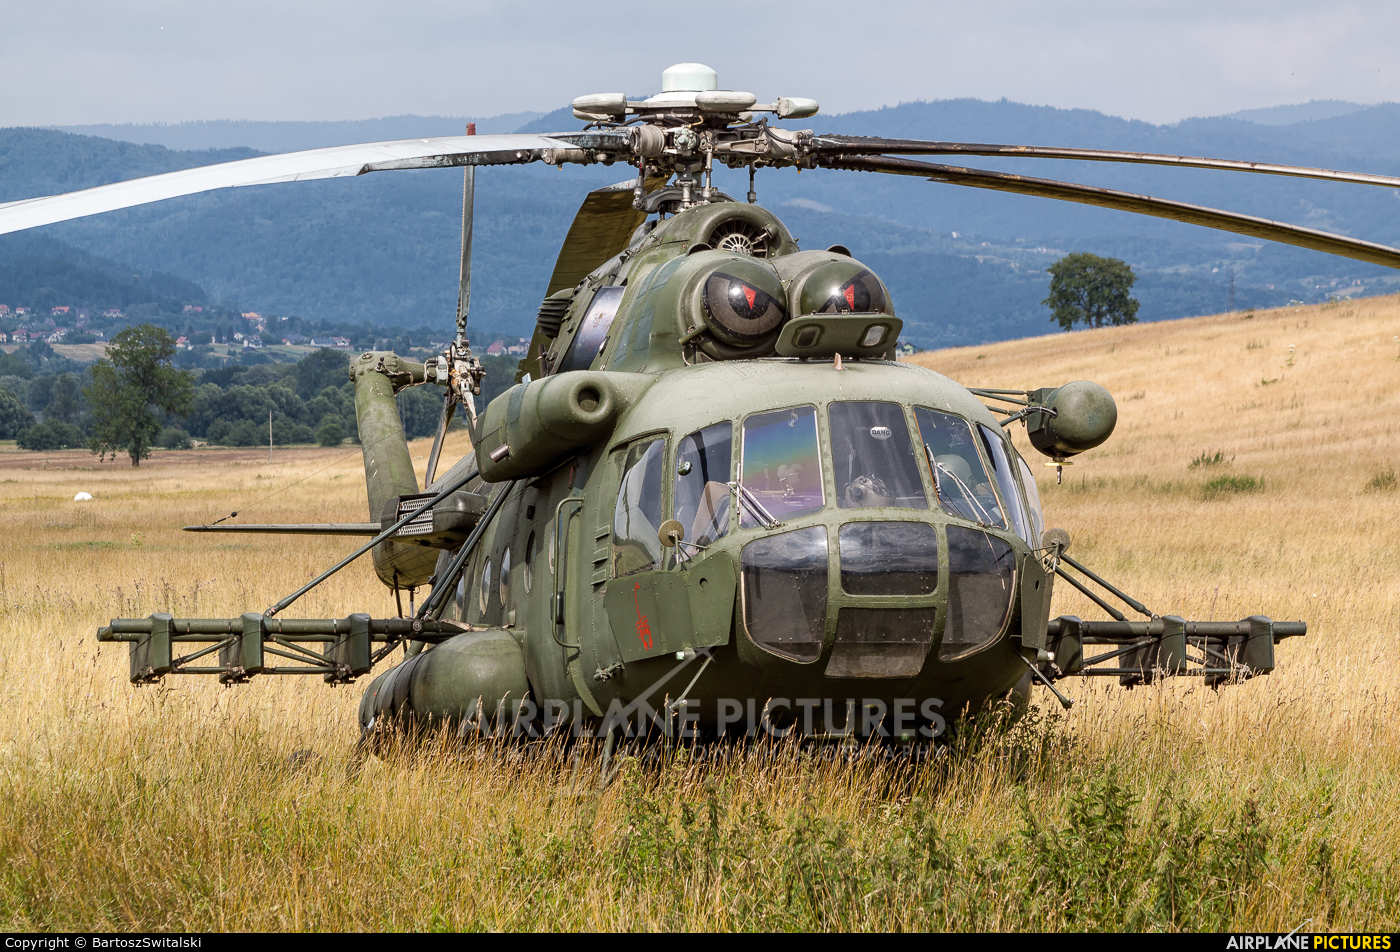 Poland- Air Force: Special Forces 6110 aircraft at Lipowa